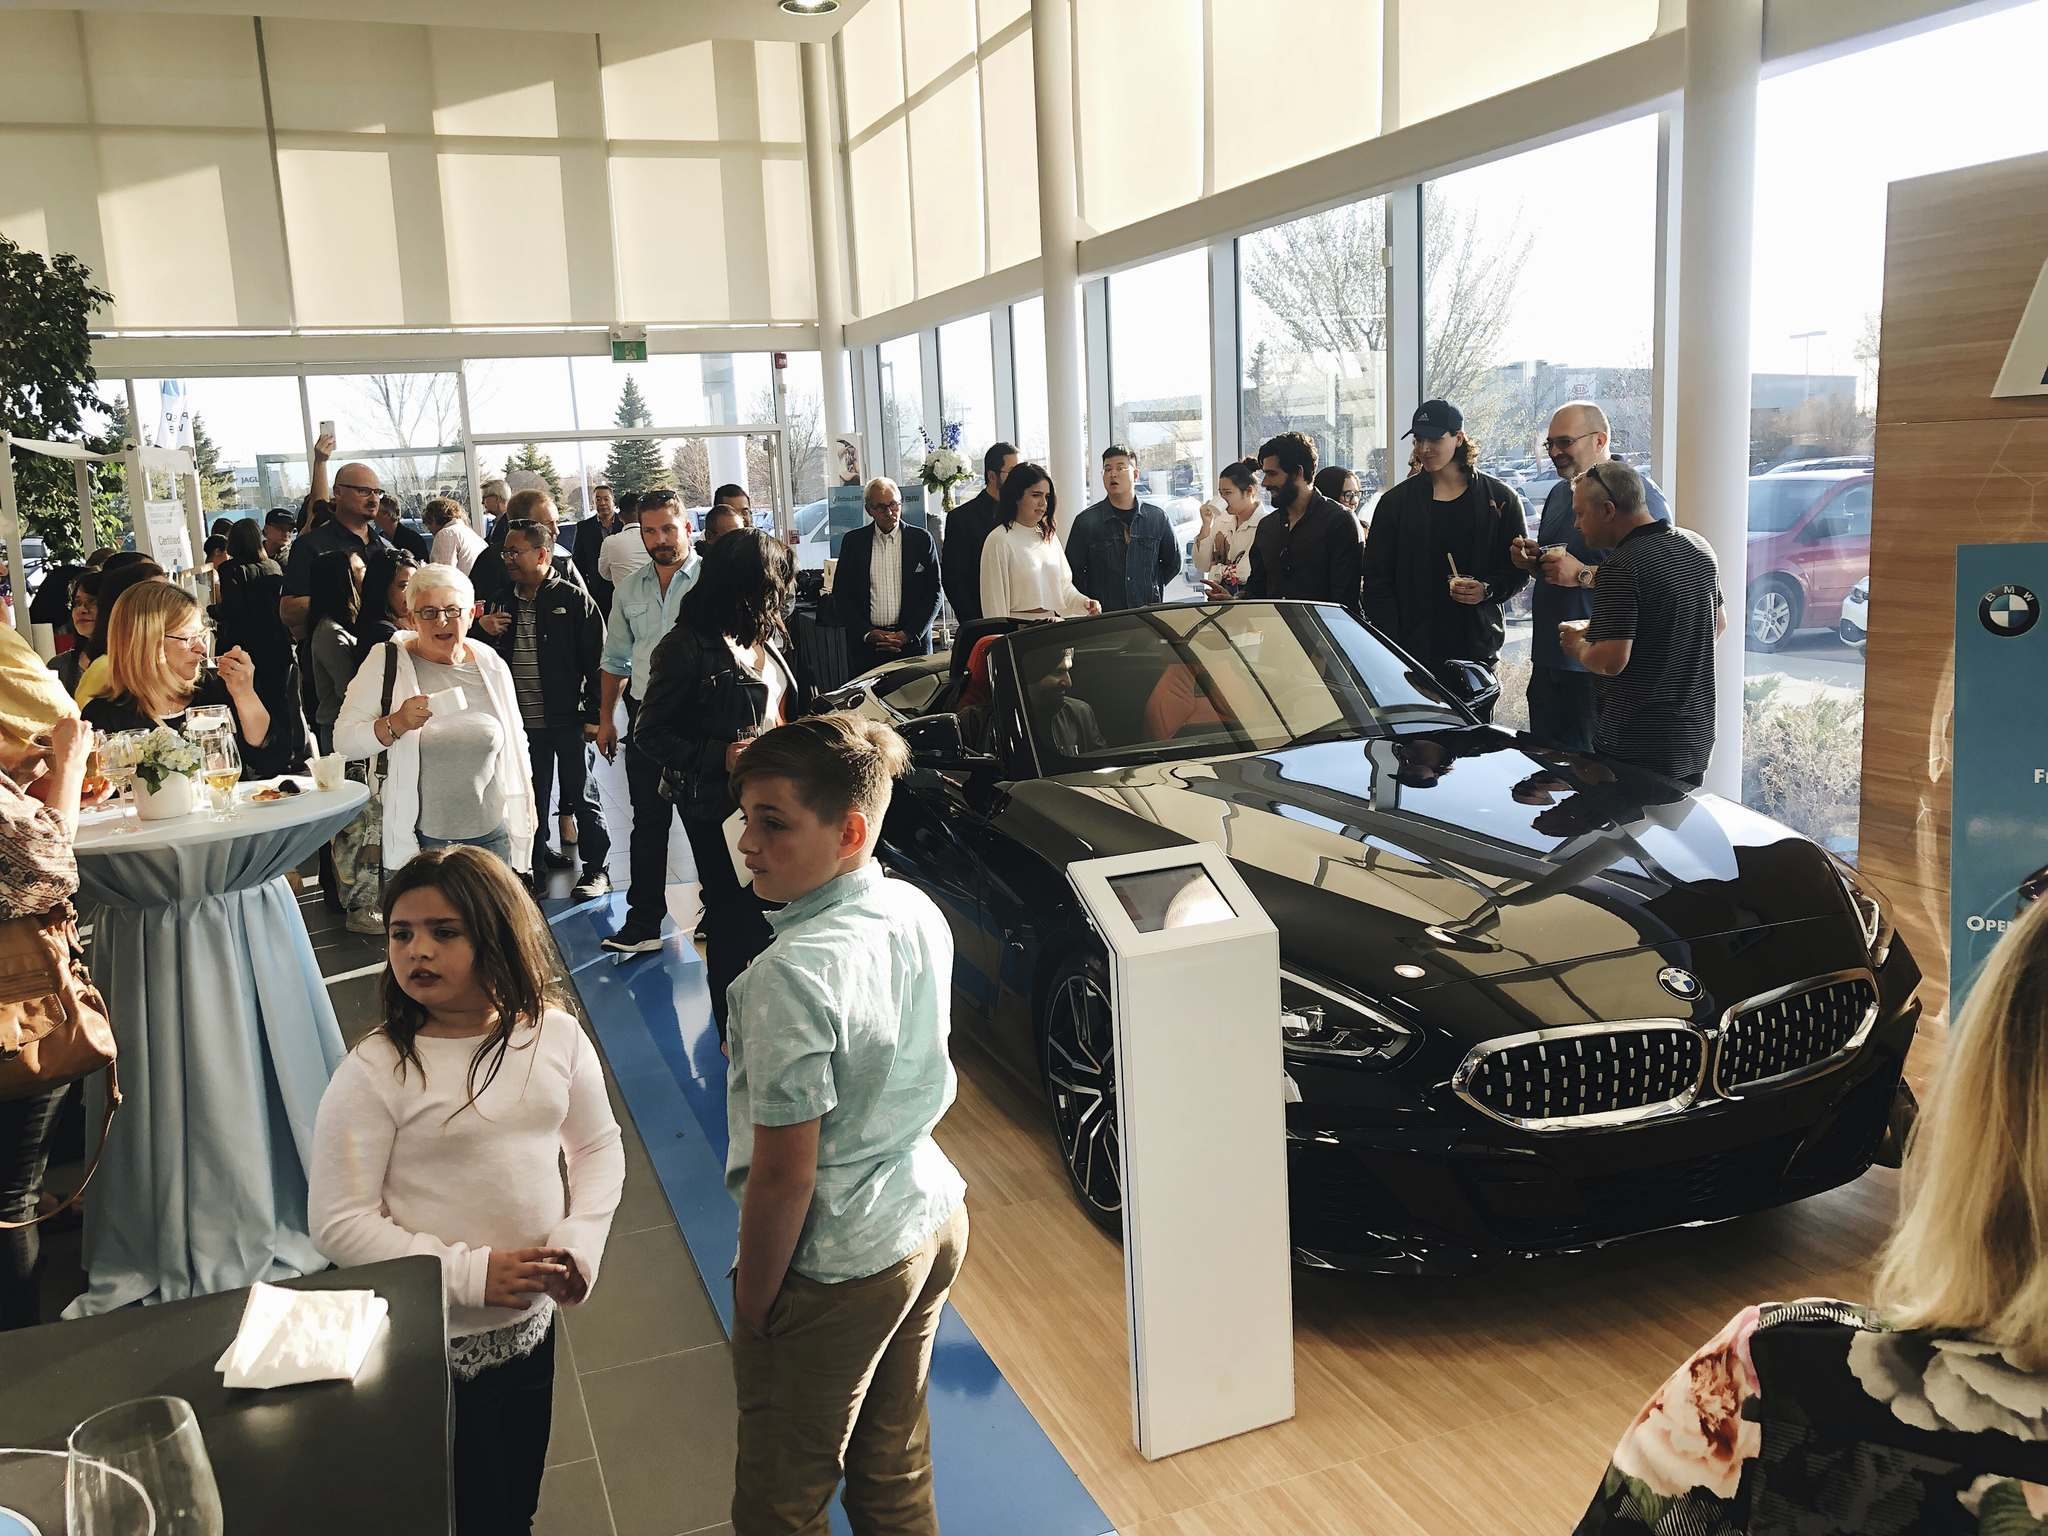 SuppliedBirchwood BMW welcomed more than 200 guests on May 14 to a showcase event featuring three of the company's newest models, including the 2020 BMW X7, M340 and the reborn Z4.